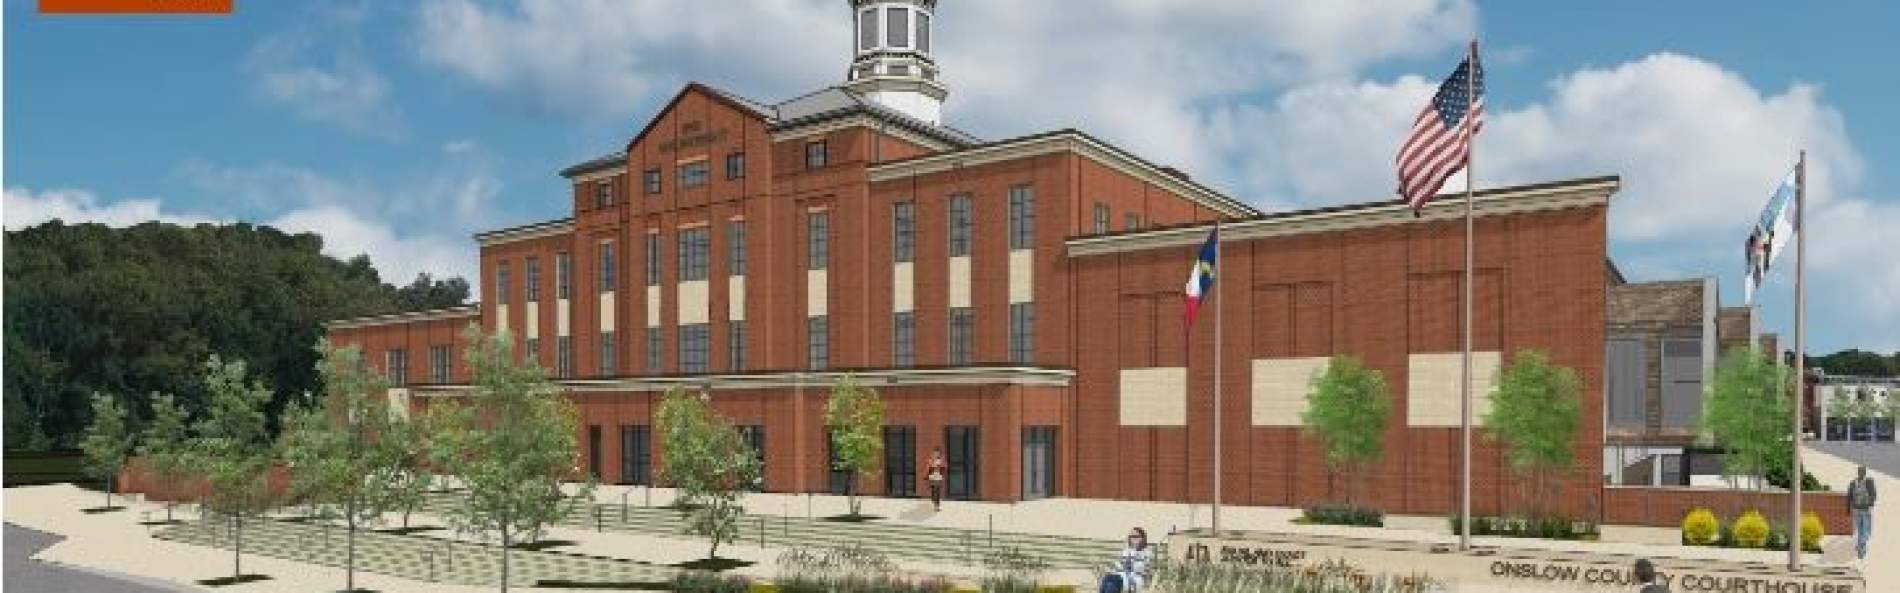 Onslow County Courthouse Expansion